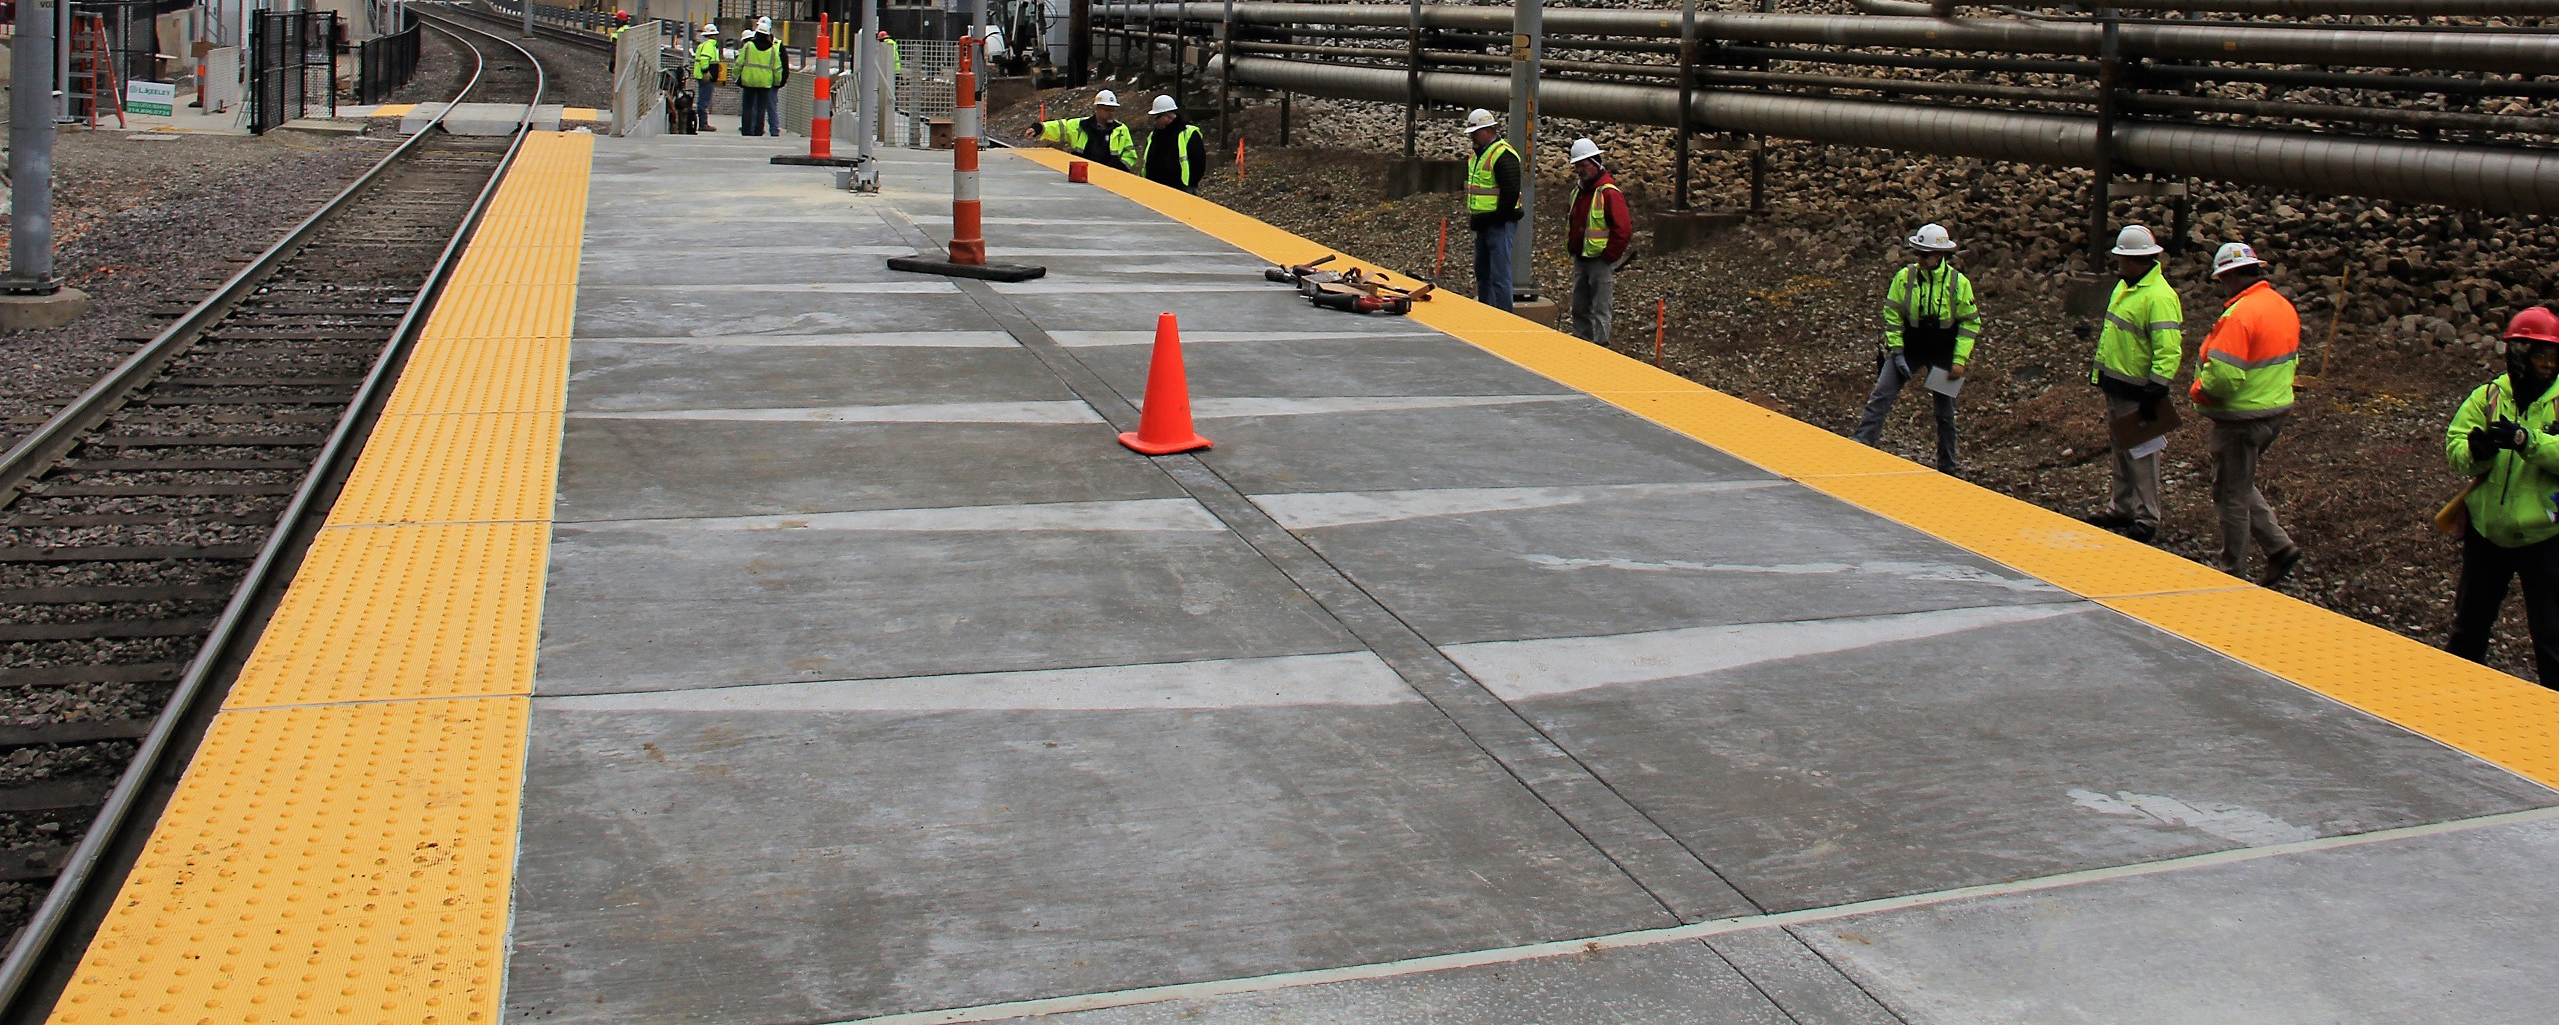 Read More | Metro Transit riders who board and exit trains at the busiest station on the 46-mile MetroLink system, the Central West End MetroLink Station, will begin using a newly constructed section of the platform on Friday, January 25.